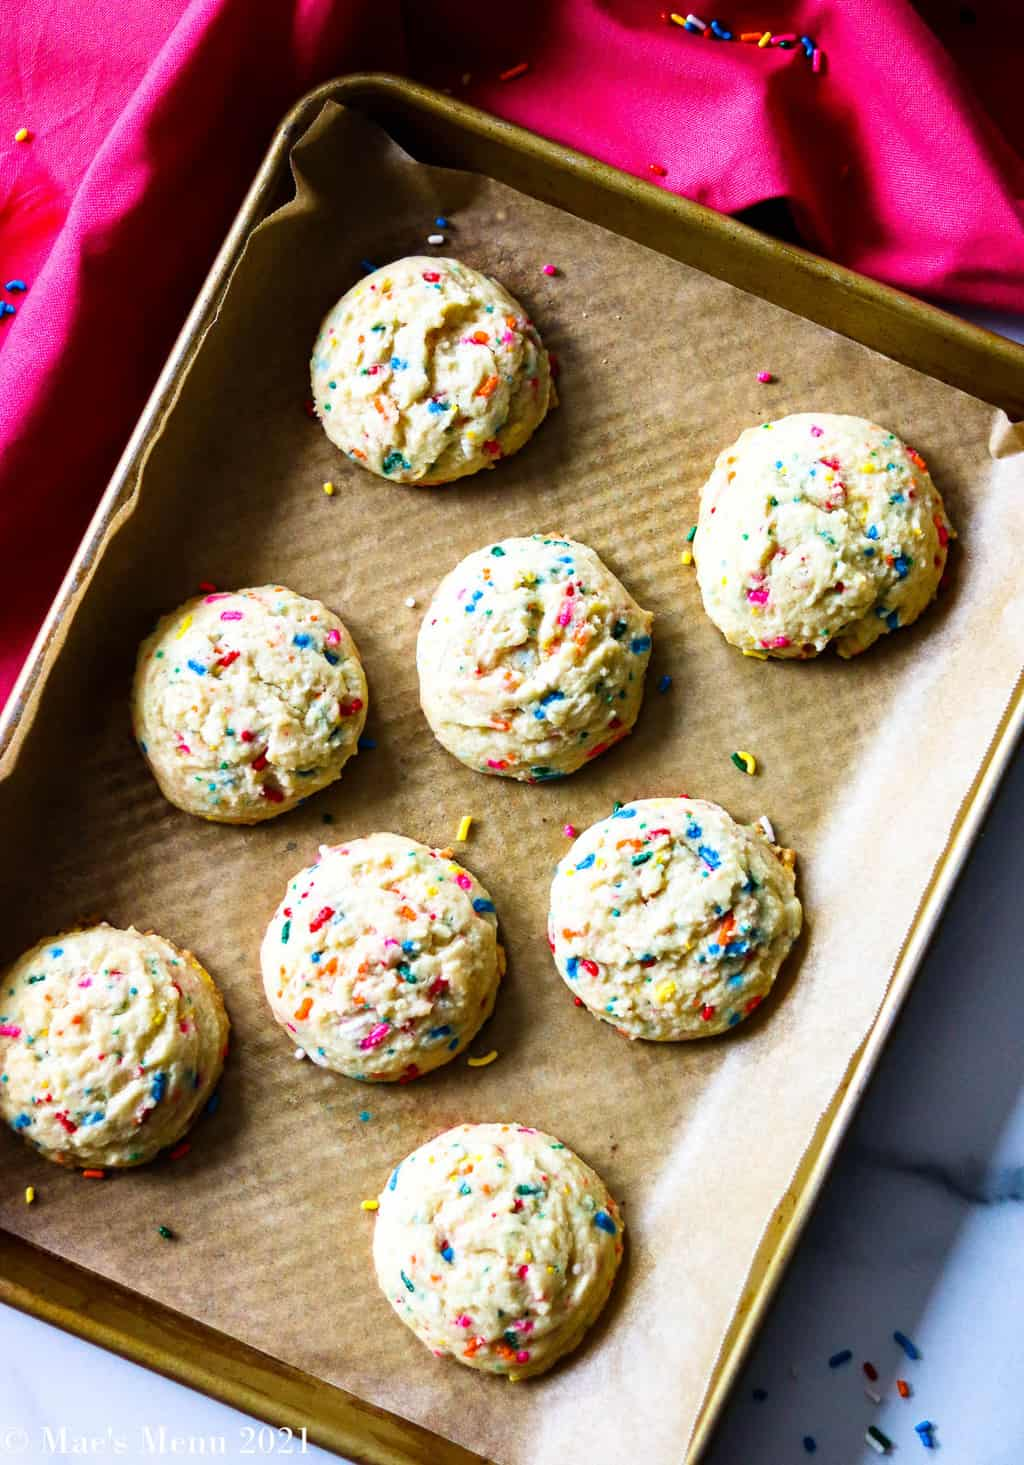 A small baking sheet of funfetti sugar cookies with a pink towel in the background